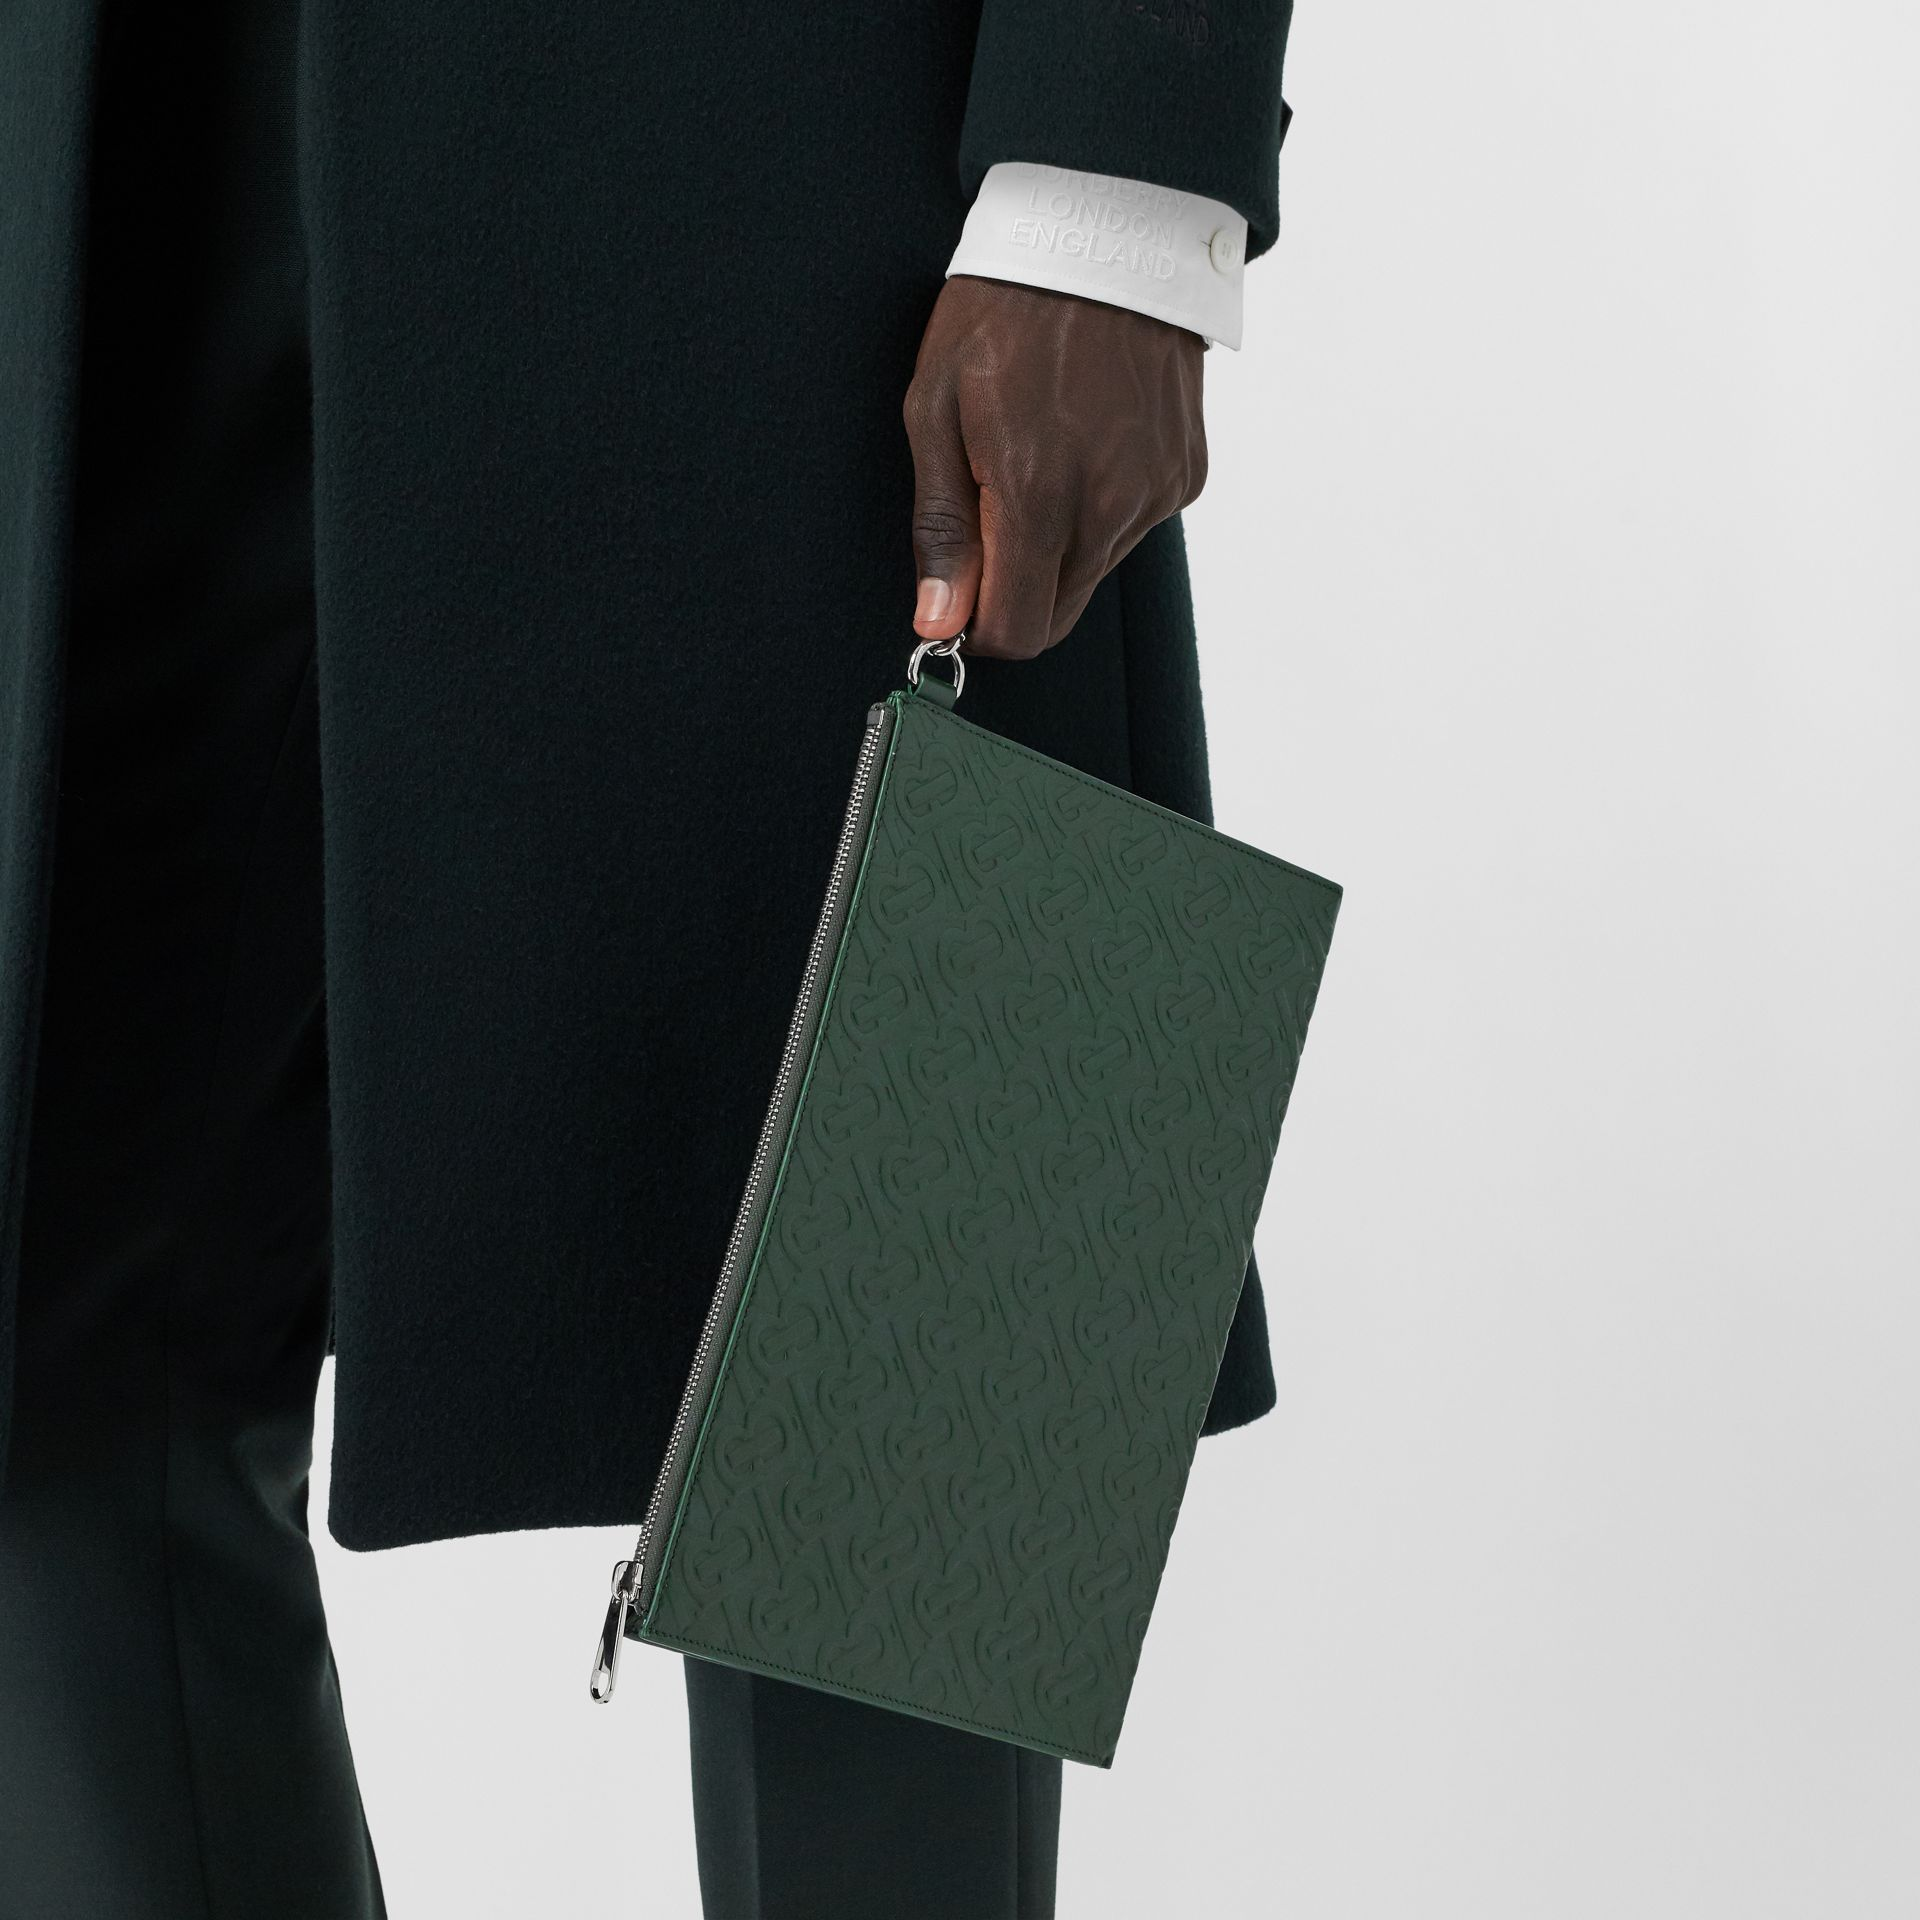 Monogram Leather Zip Pouch in Dark Pine Green - Men | Burberry Hong Kong S.A.R - gallery image 2